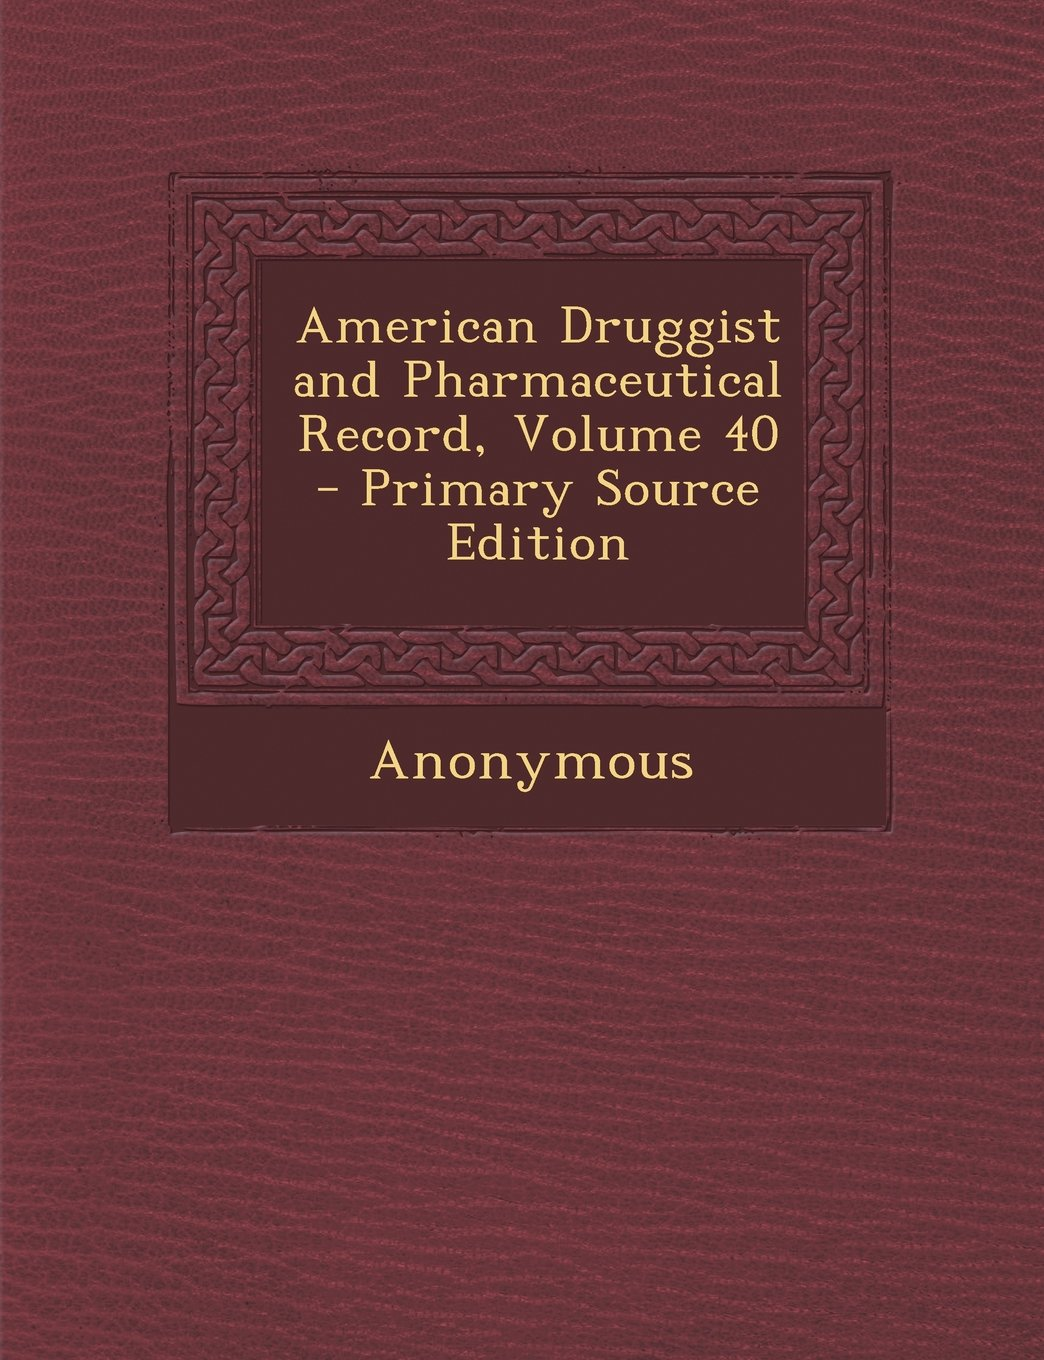 American Druggist and Pharmaceutical Record, Volume 40 ebook